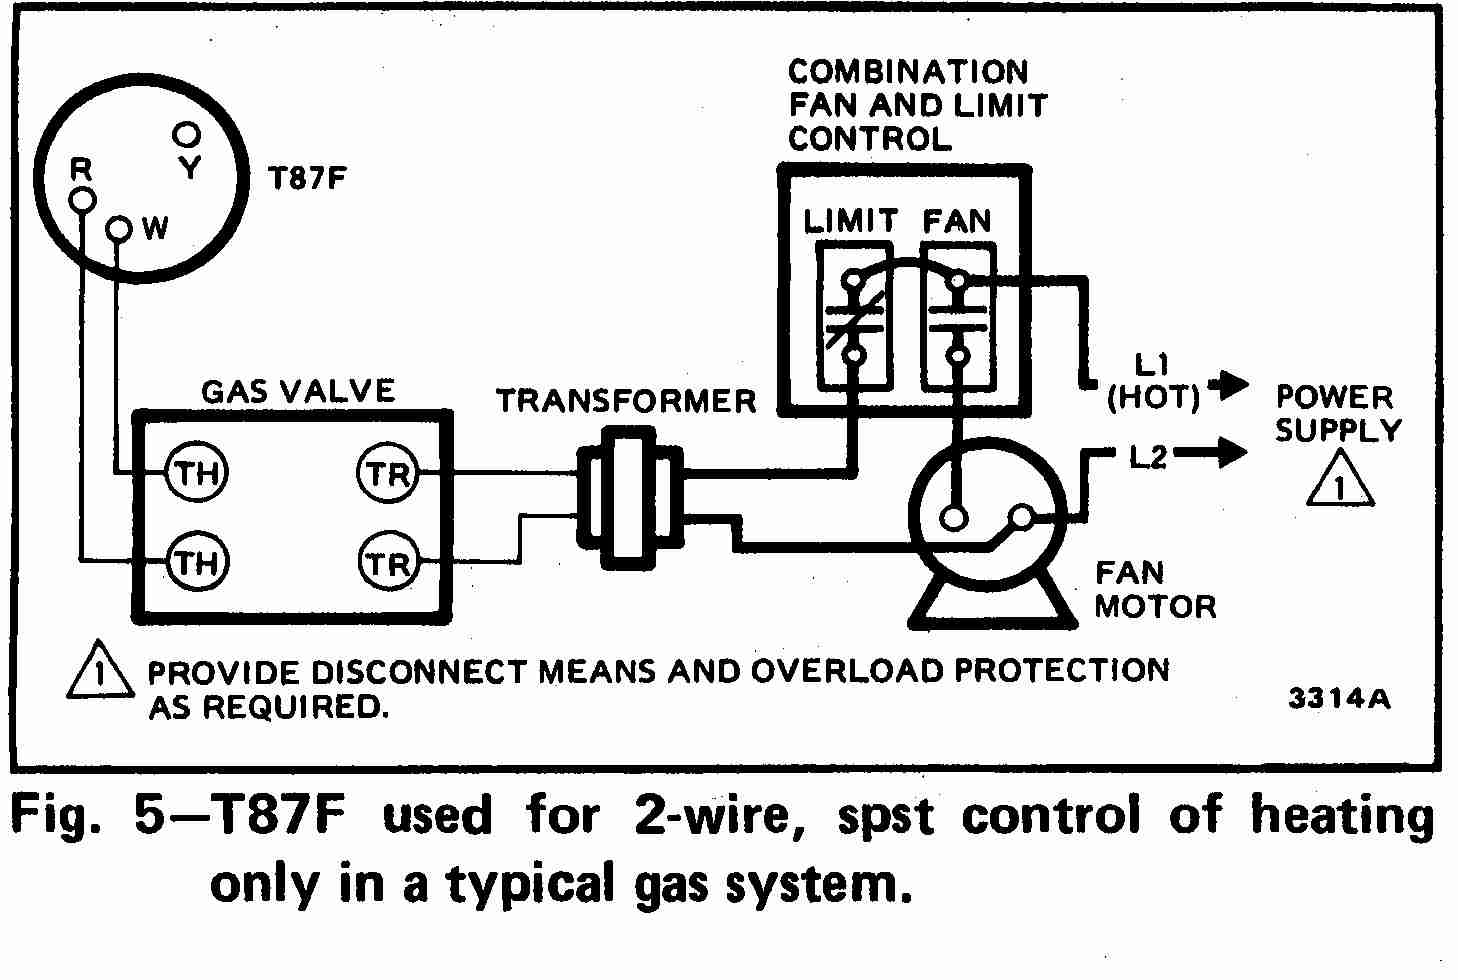 TT_T87F_0002_2Wg_DJF guide to wiring connections for room thermostats home thermostat wiring diagram at soozxer.org